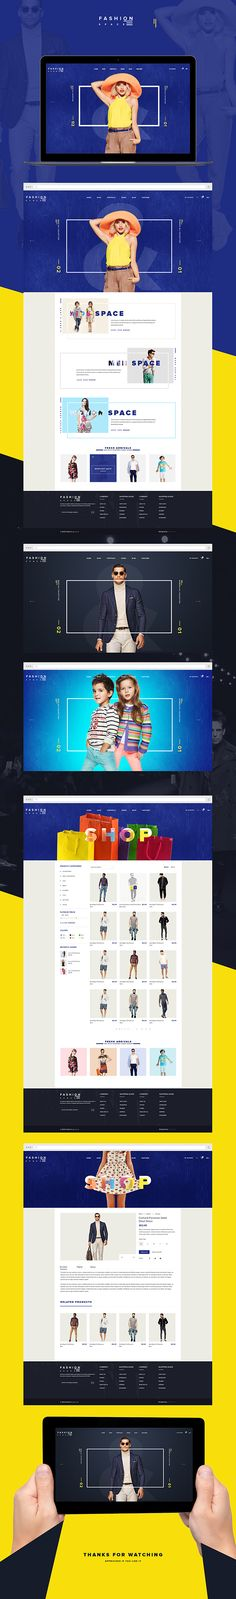 Fashion Space on Web Design Served